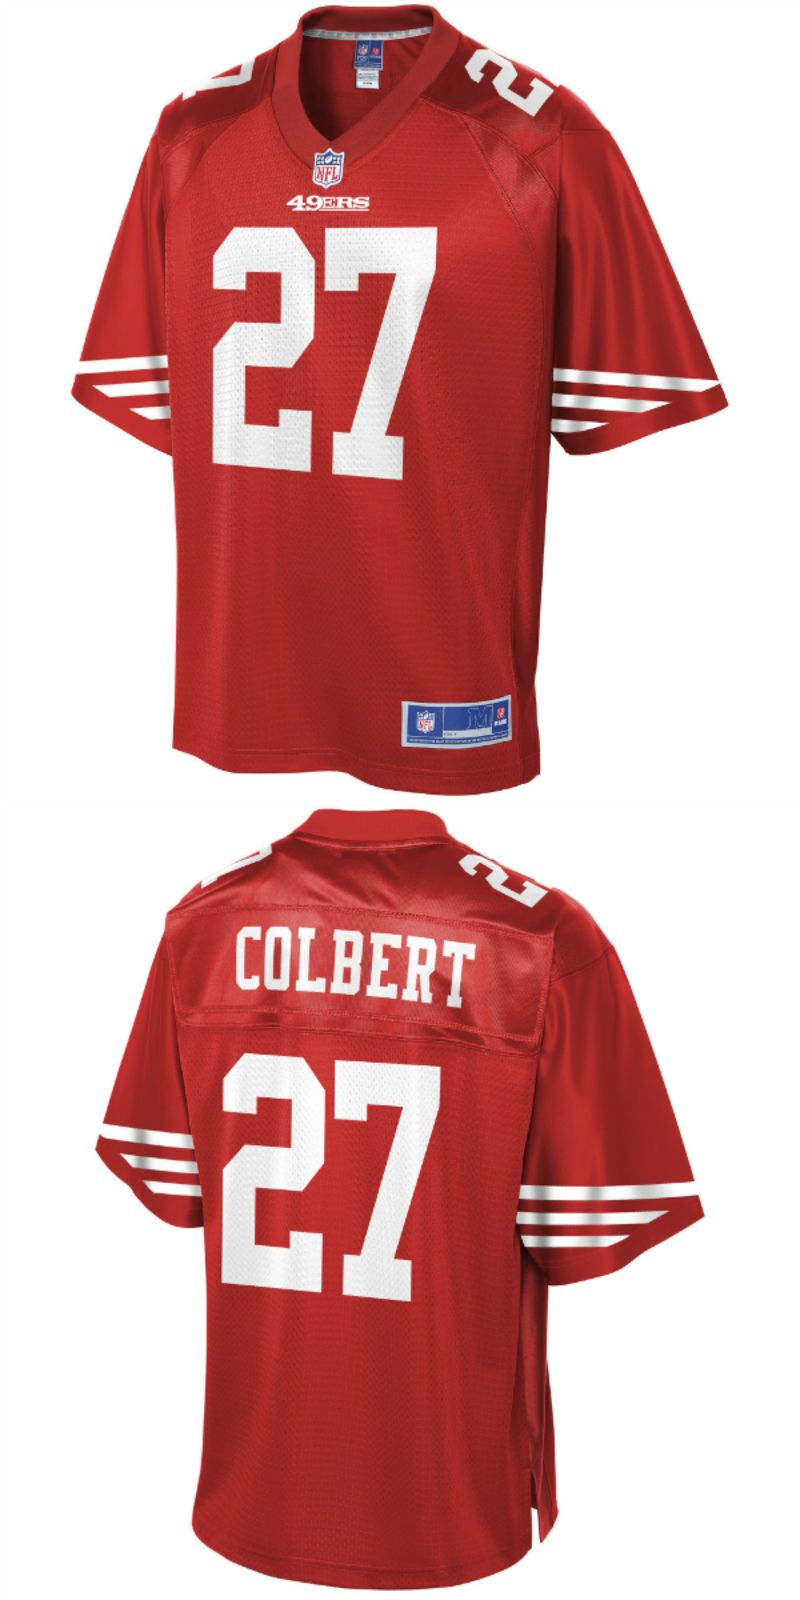 watch 0af2e 9a38e UP TO 70% OFF. Adrian Colbert San Francisco 49ers NFL Pro ...